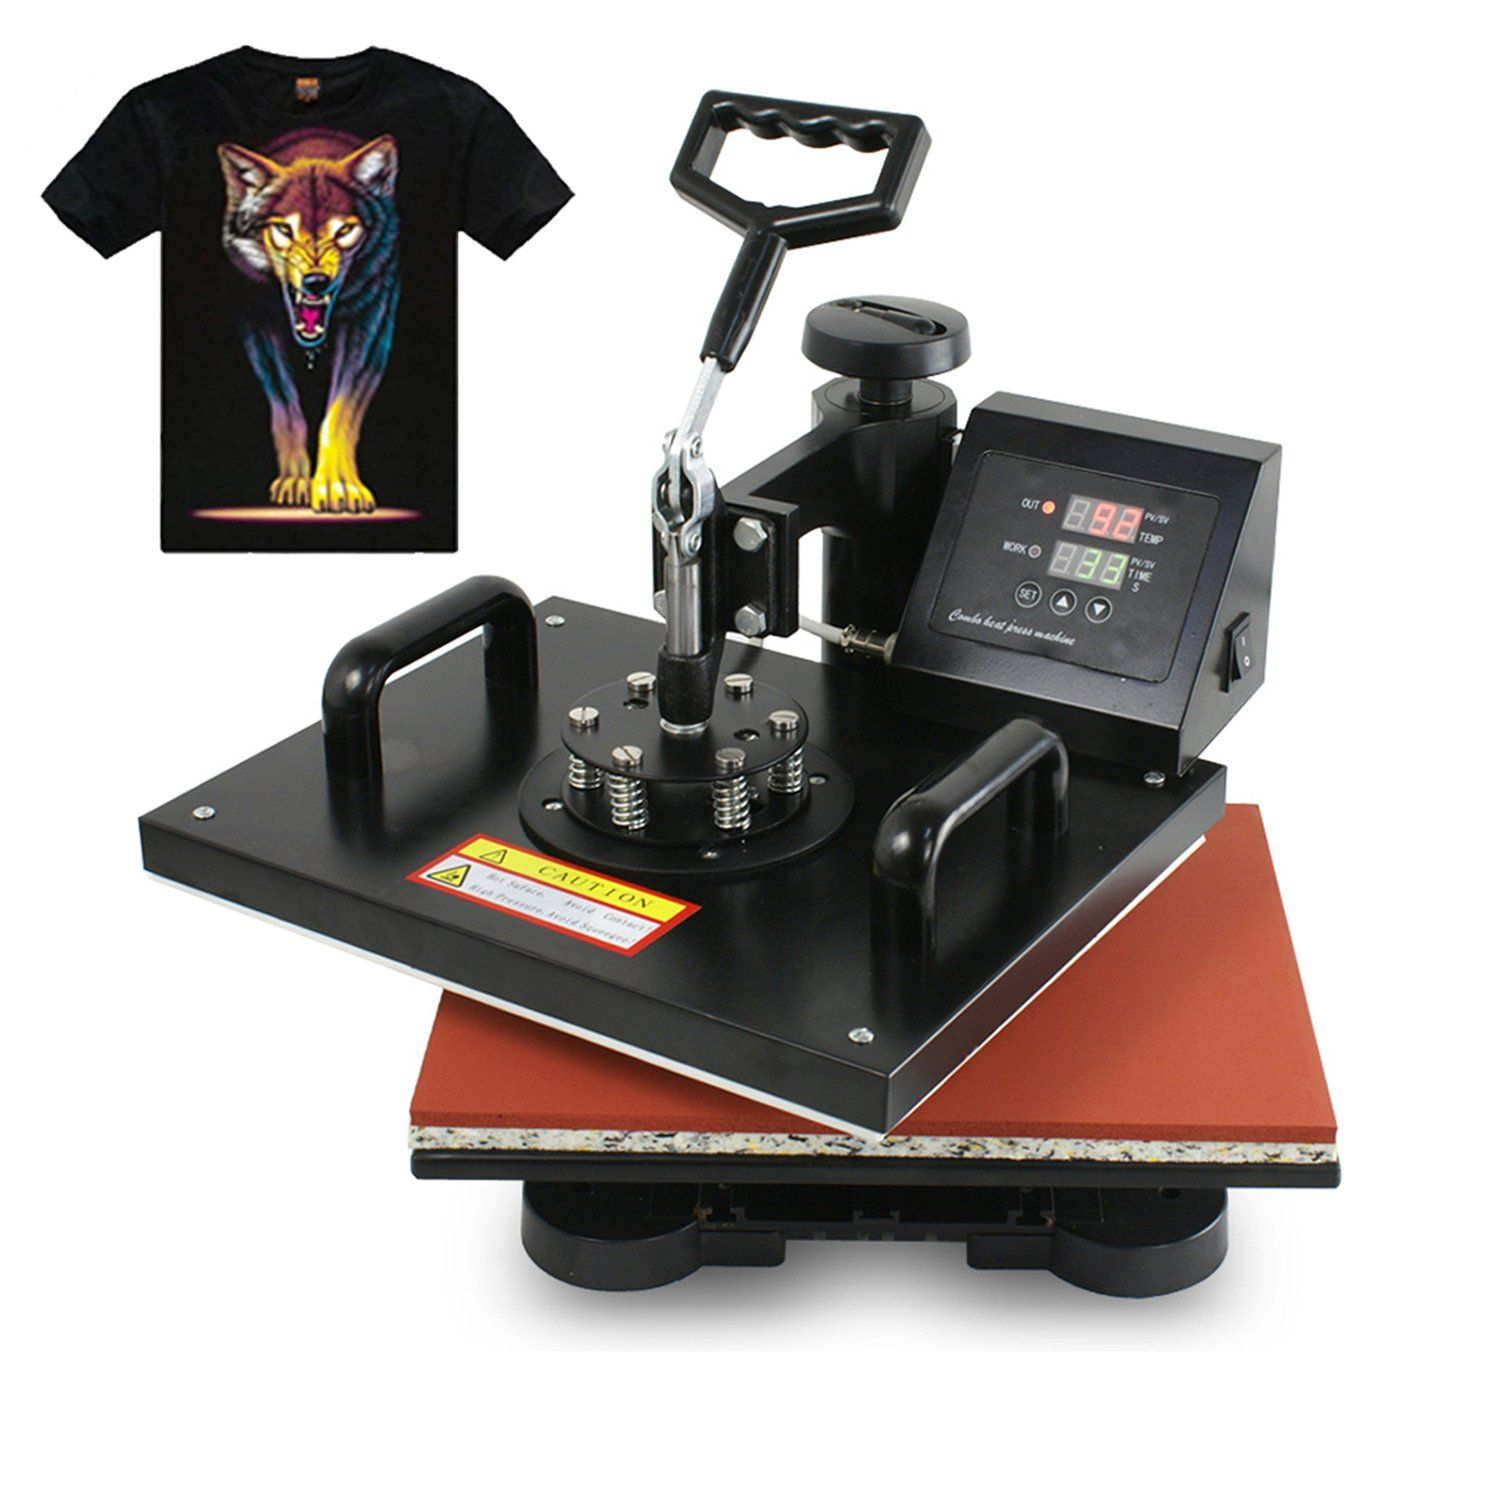 a68e3076 F2C Pro 5 in 1 Digital Transfer Sublimation Heat Press Machine Hat/Mug/Plate /Cap/T-shirt Multifunction New Black(5 in 1)